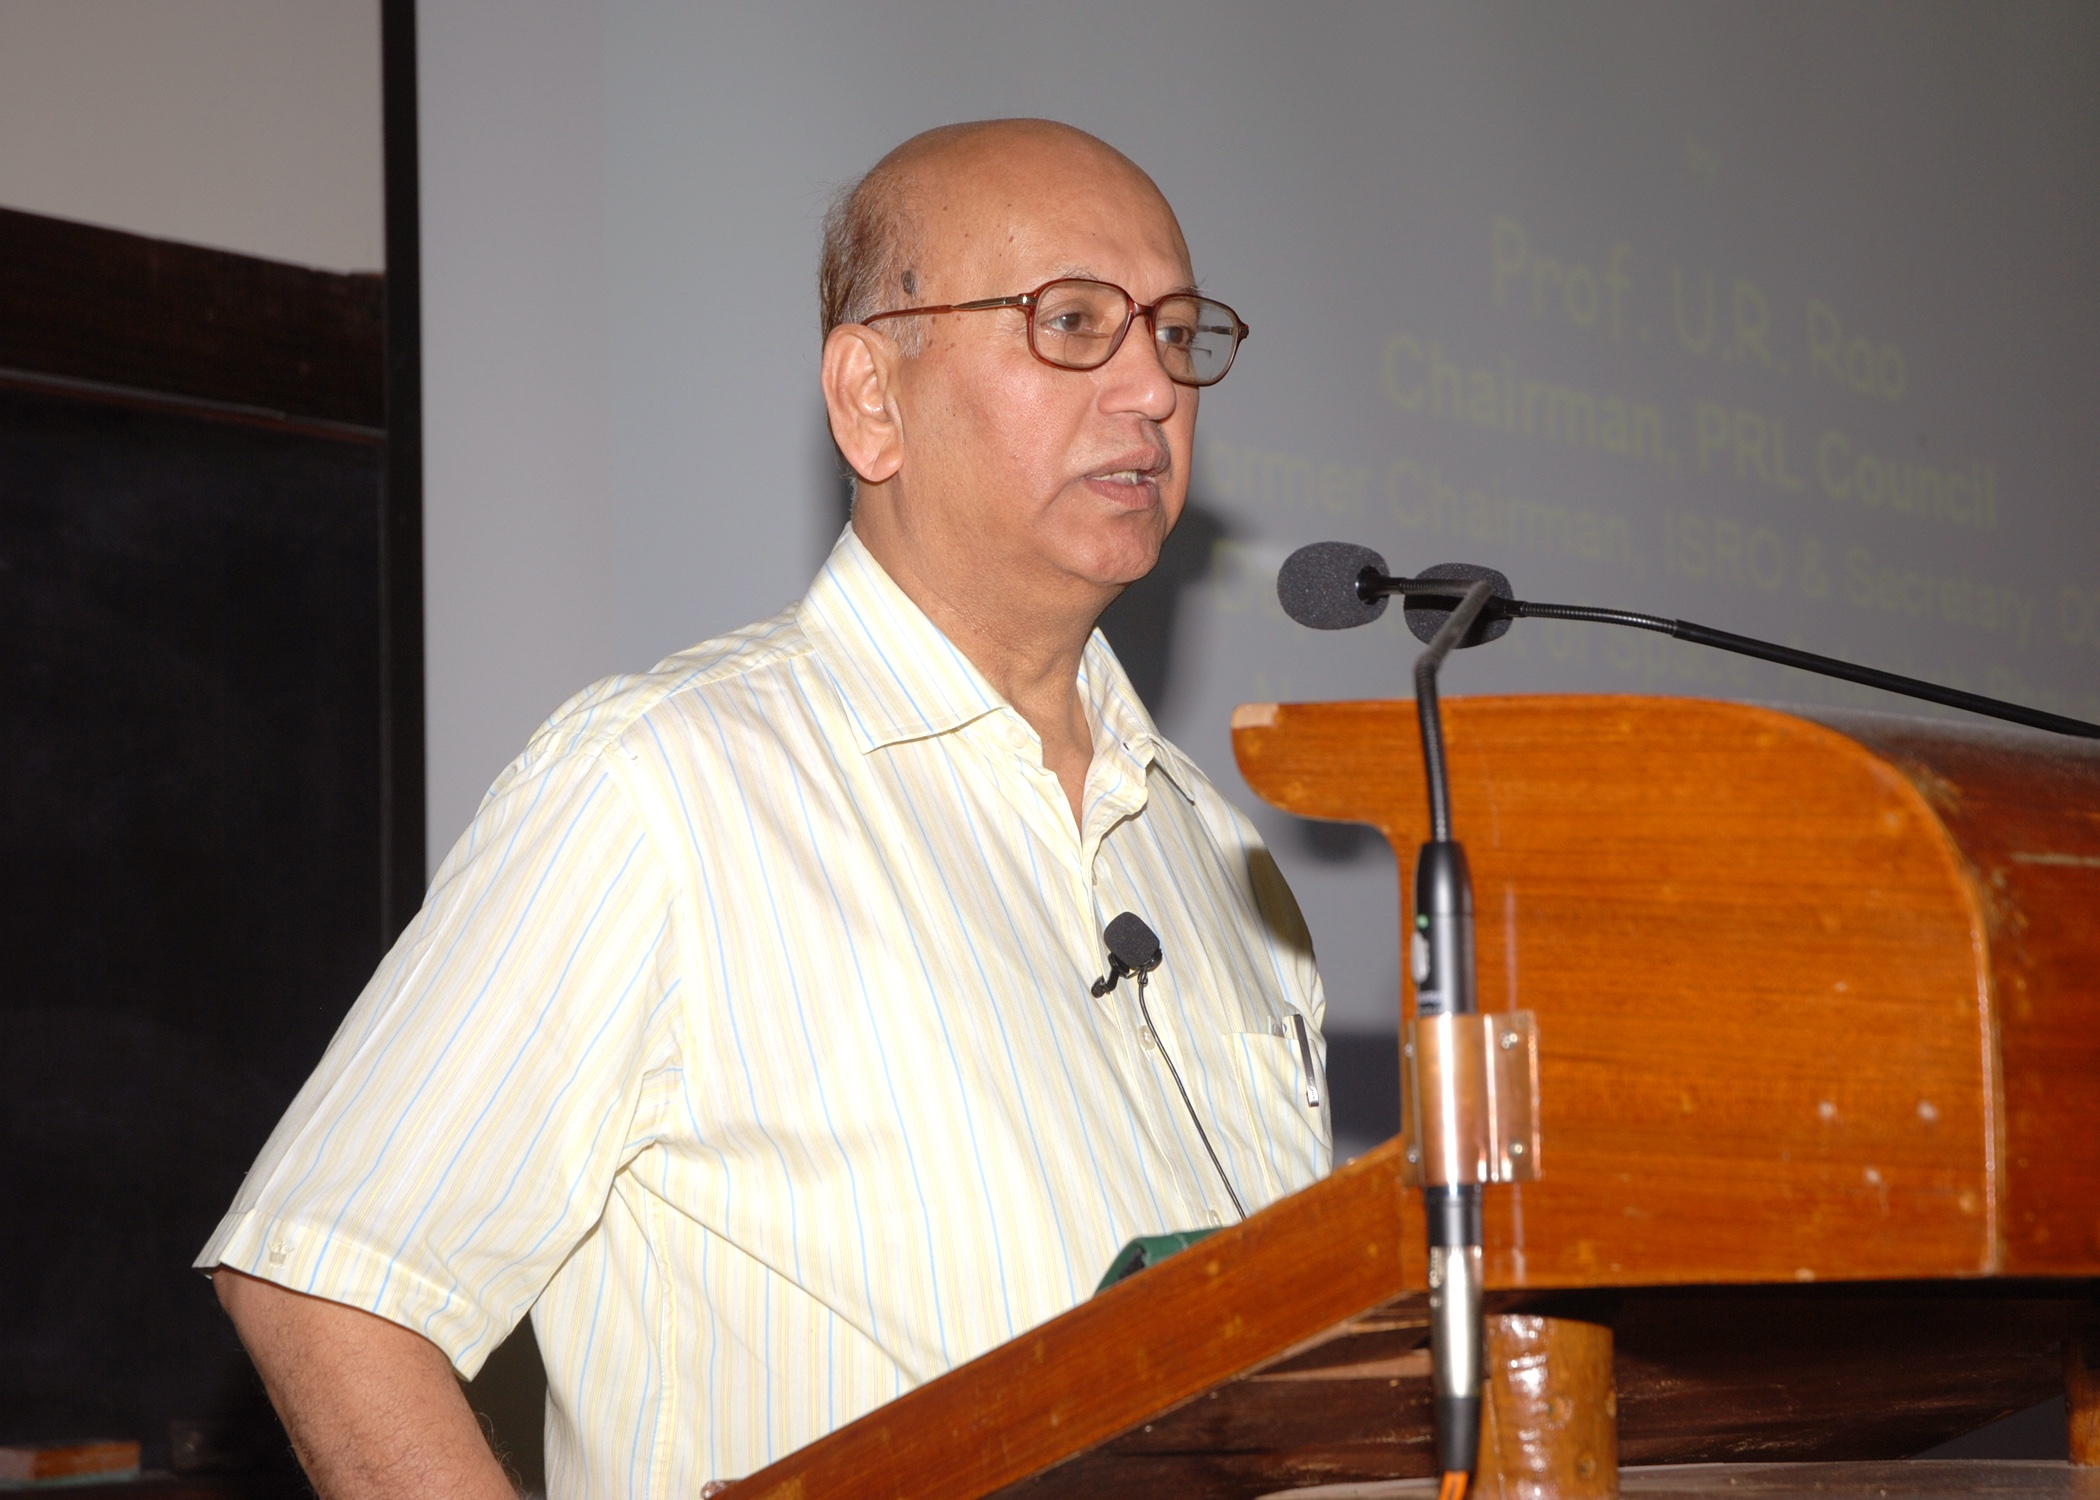 U.R. Rao, 2013. Source: Vikram Sarabhai Space Centre